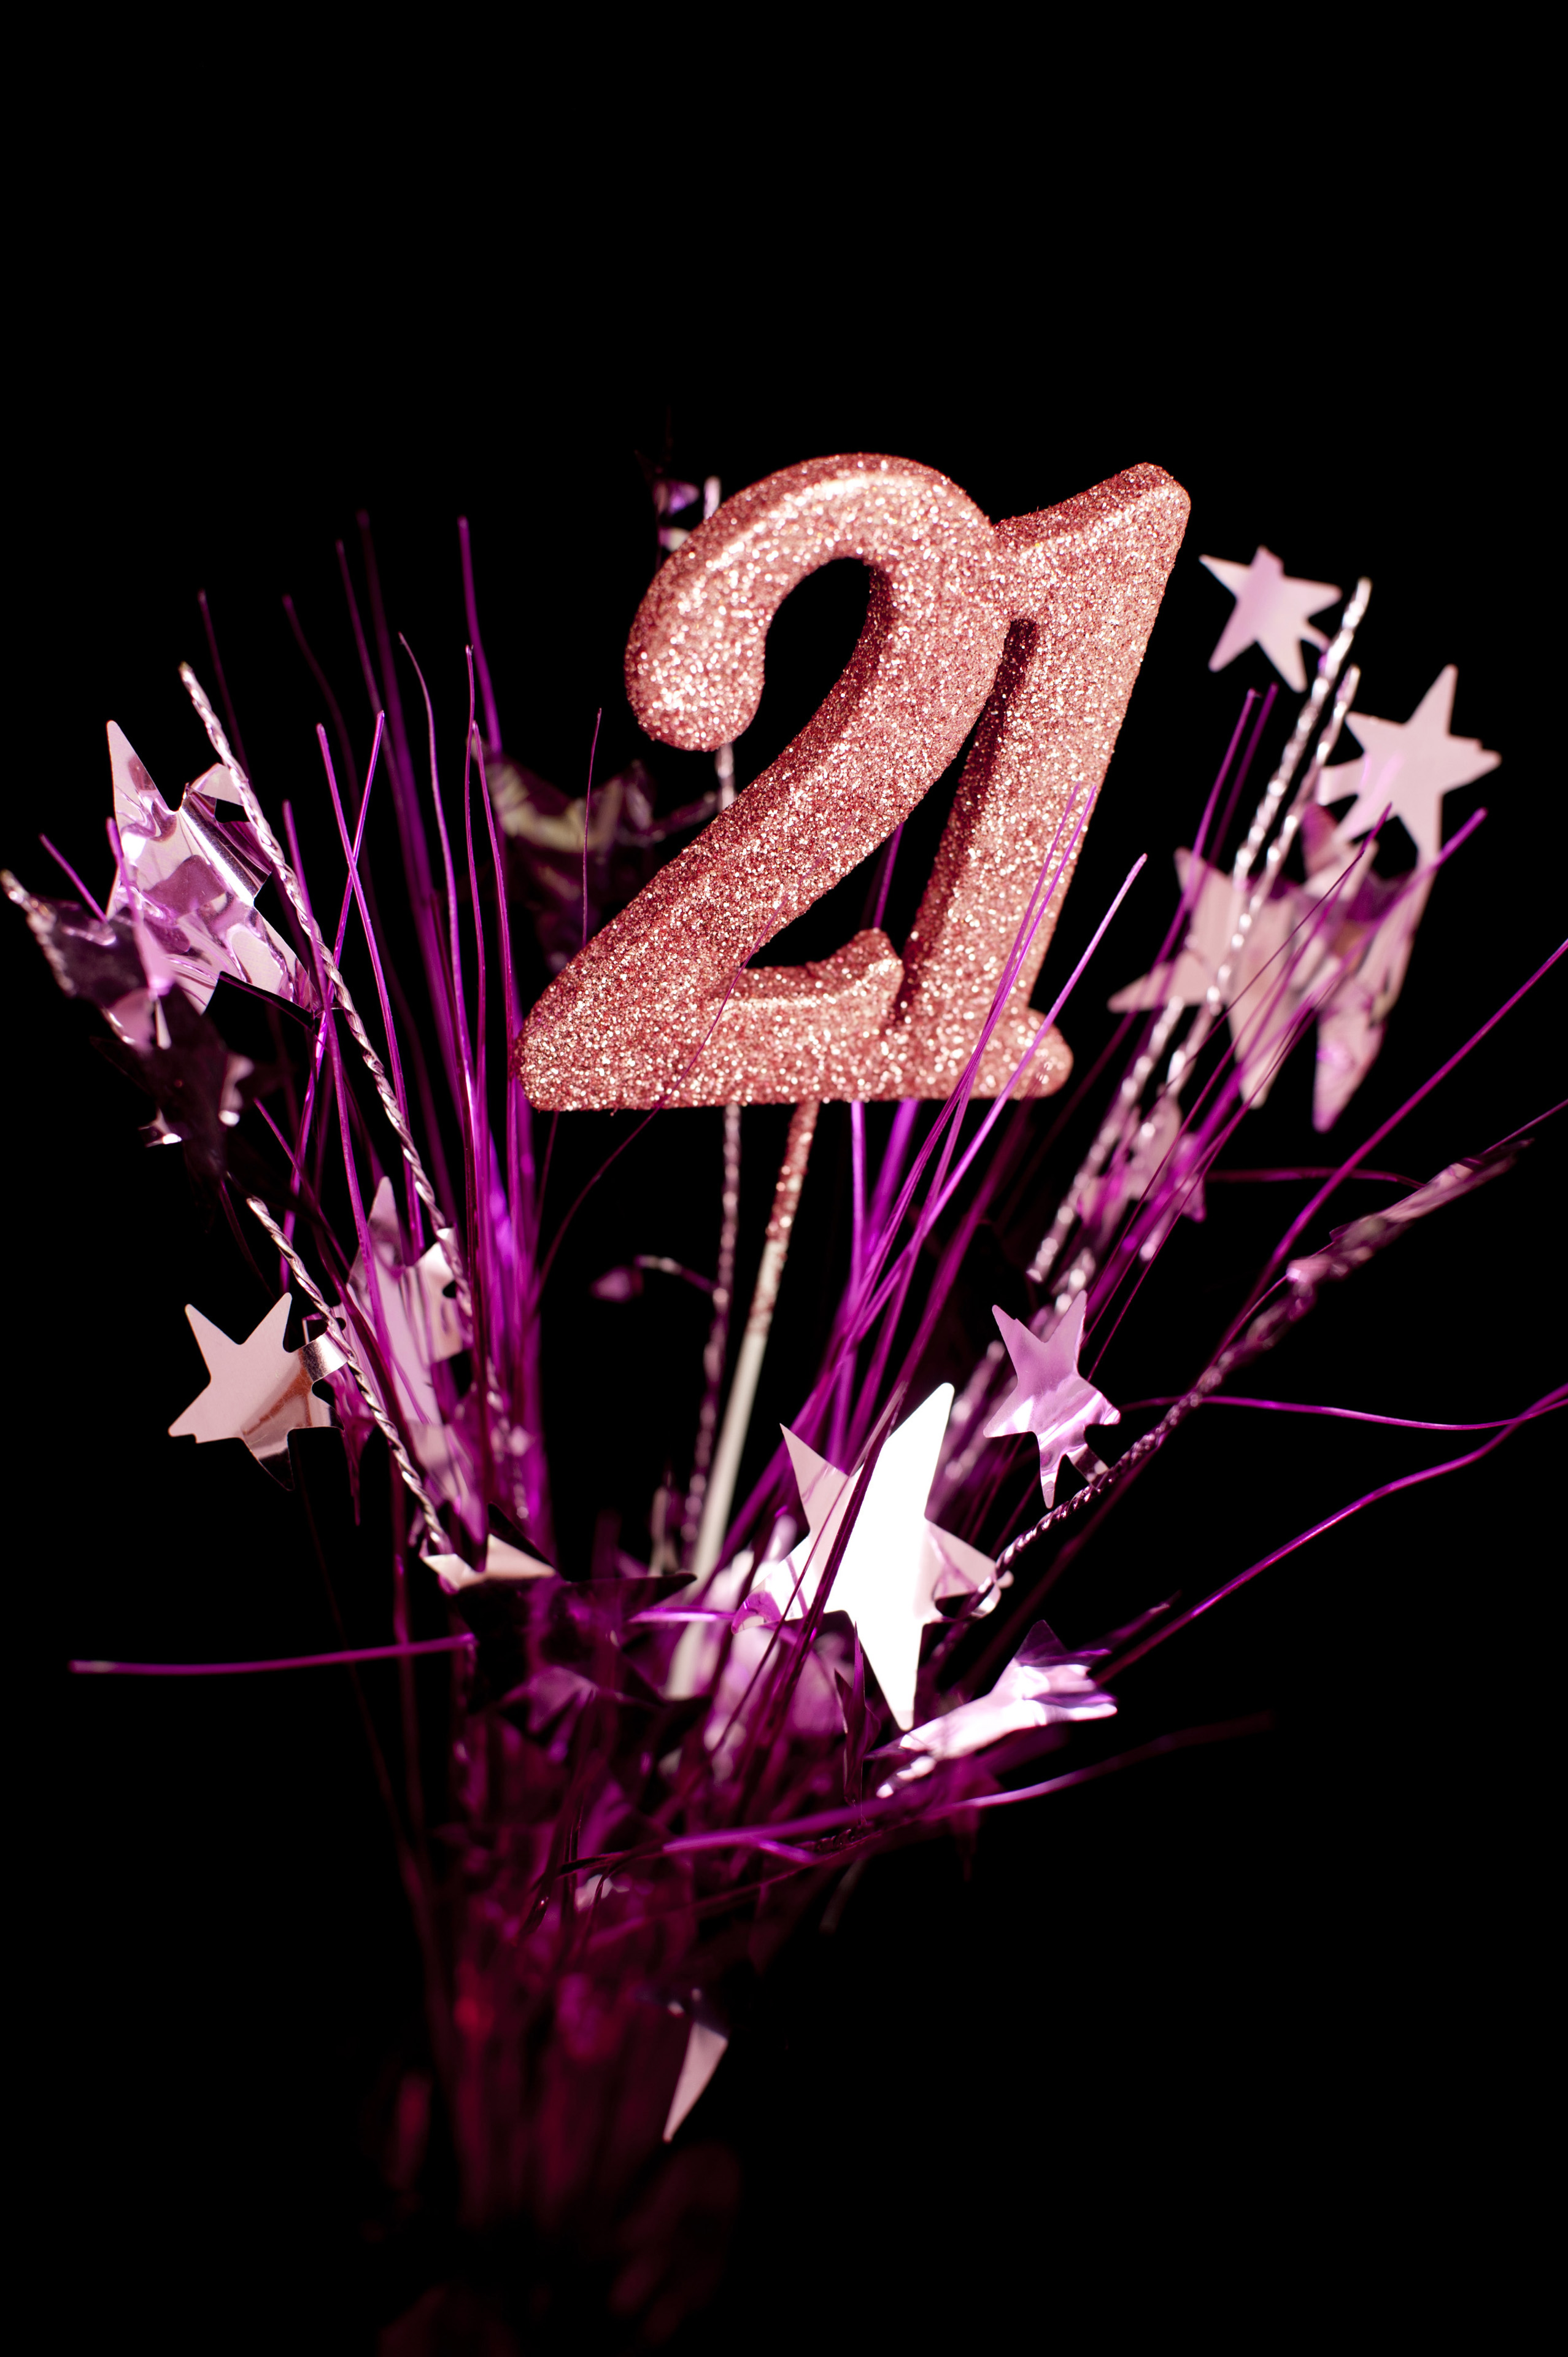 Girls 21st birthday celebrations to mark her coming of age with pink glitter numbers surrounded by a spray of stars over a dark background